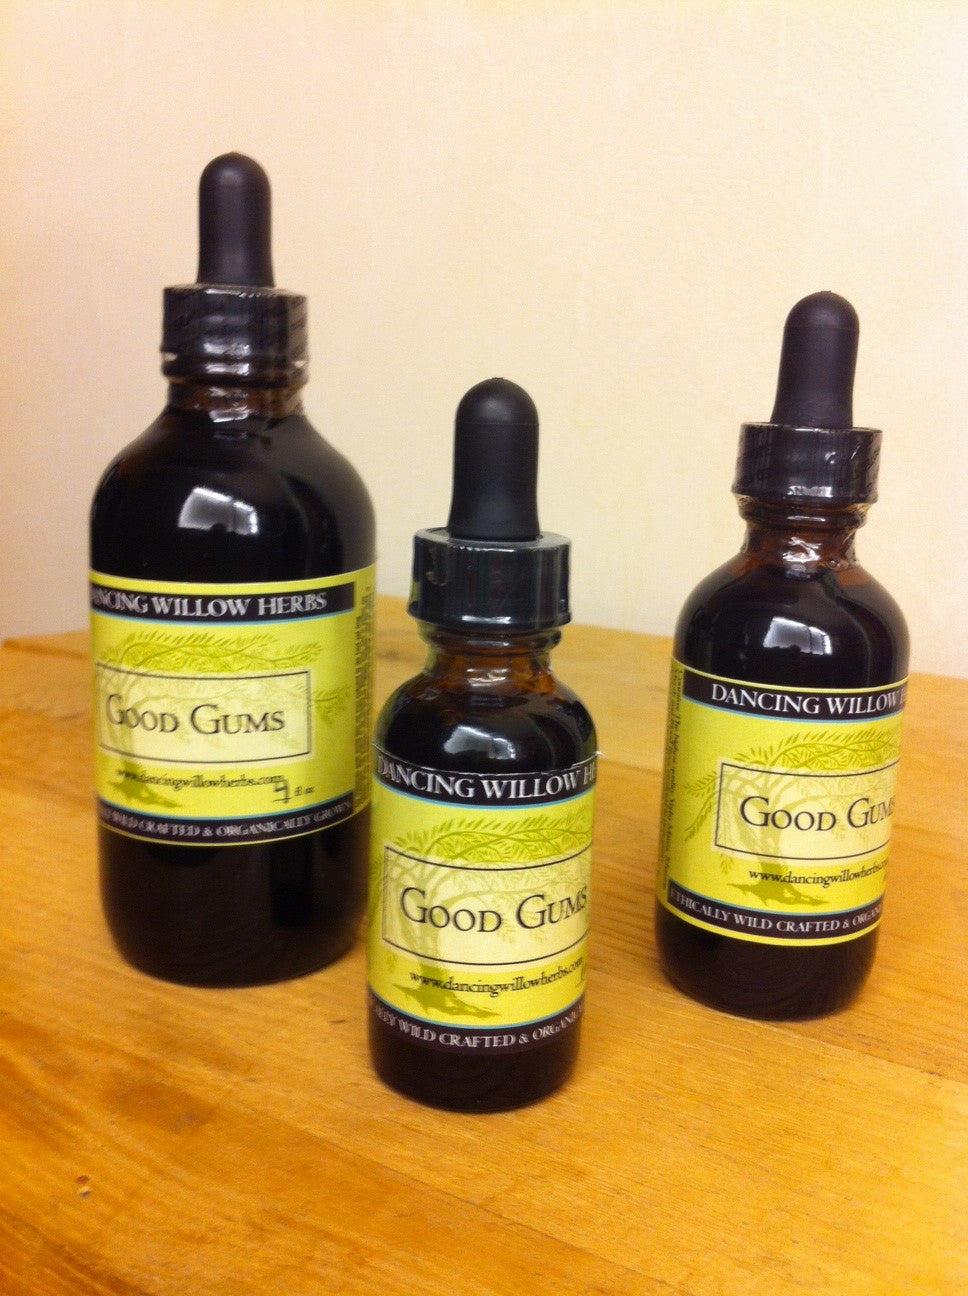 Good Gums - Dancing Willow Herbs Herbal Formulas - herbal formulas